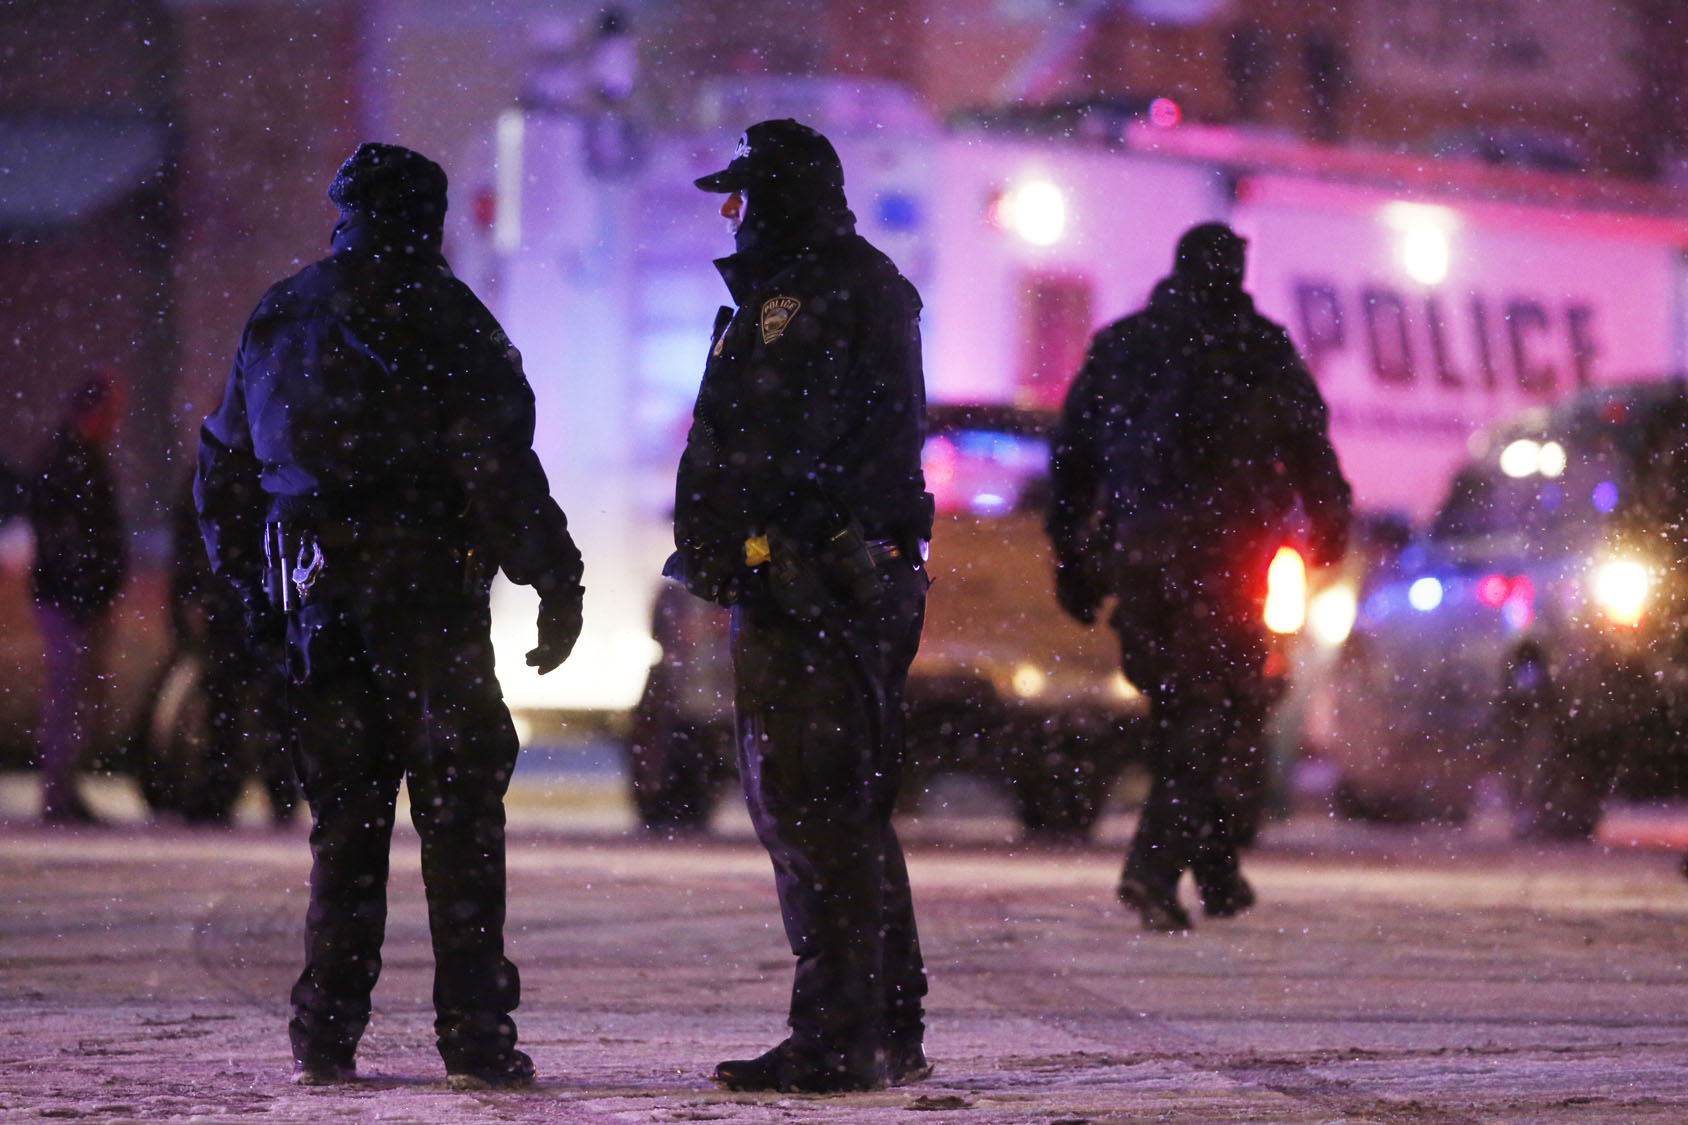 Aftermath of Colorado's Planned Parenthood shooting